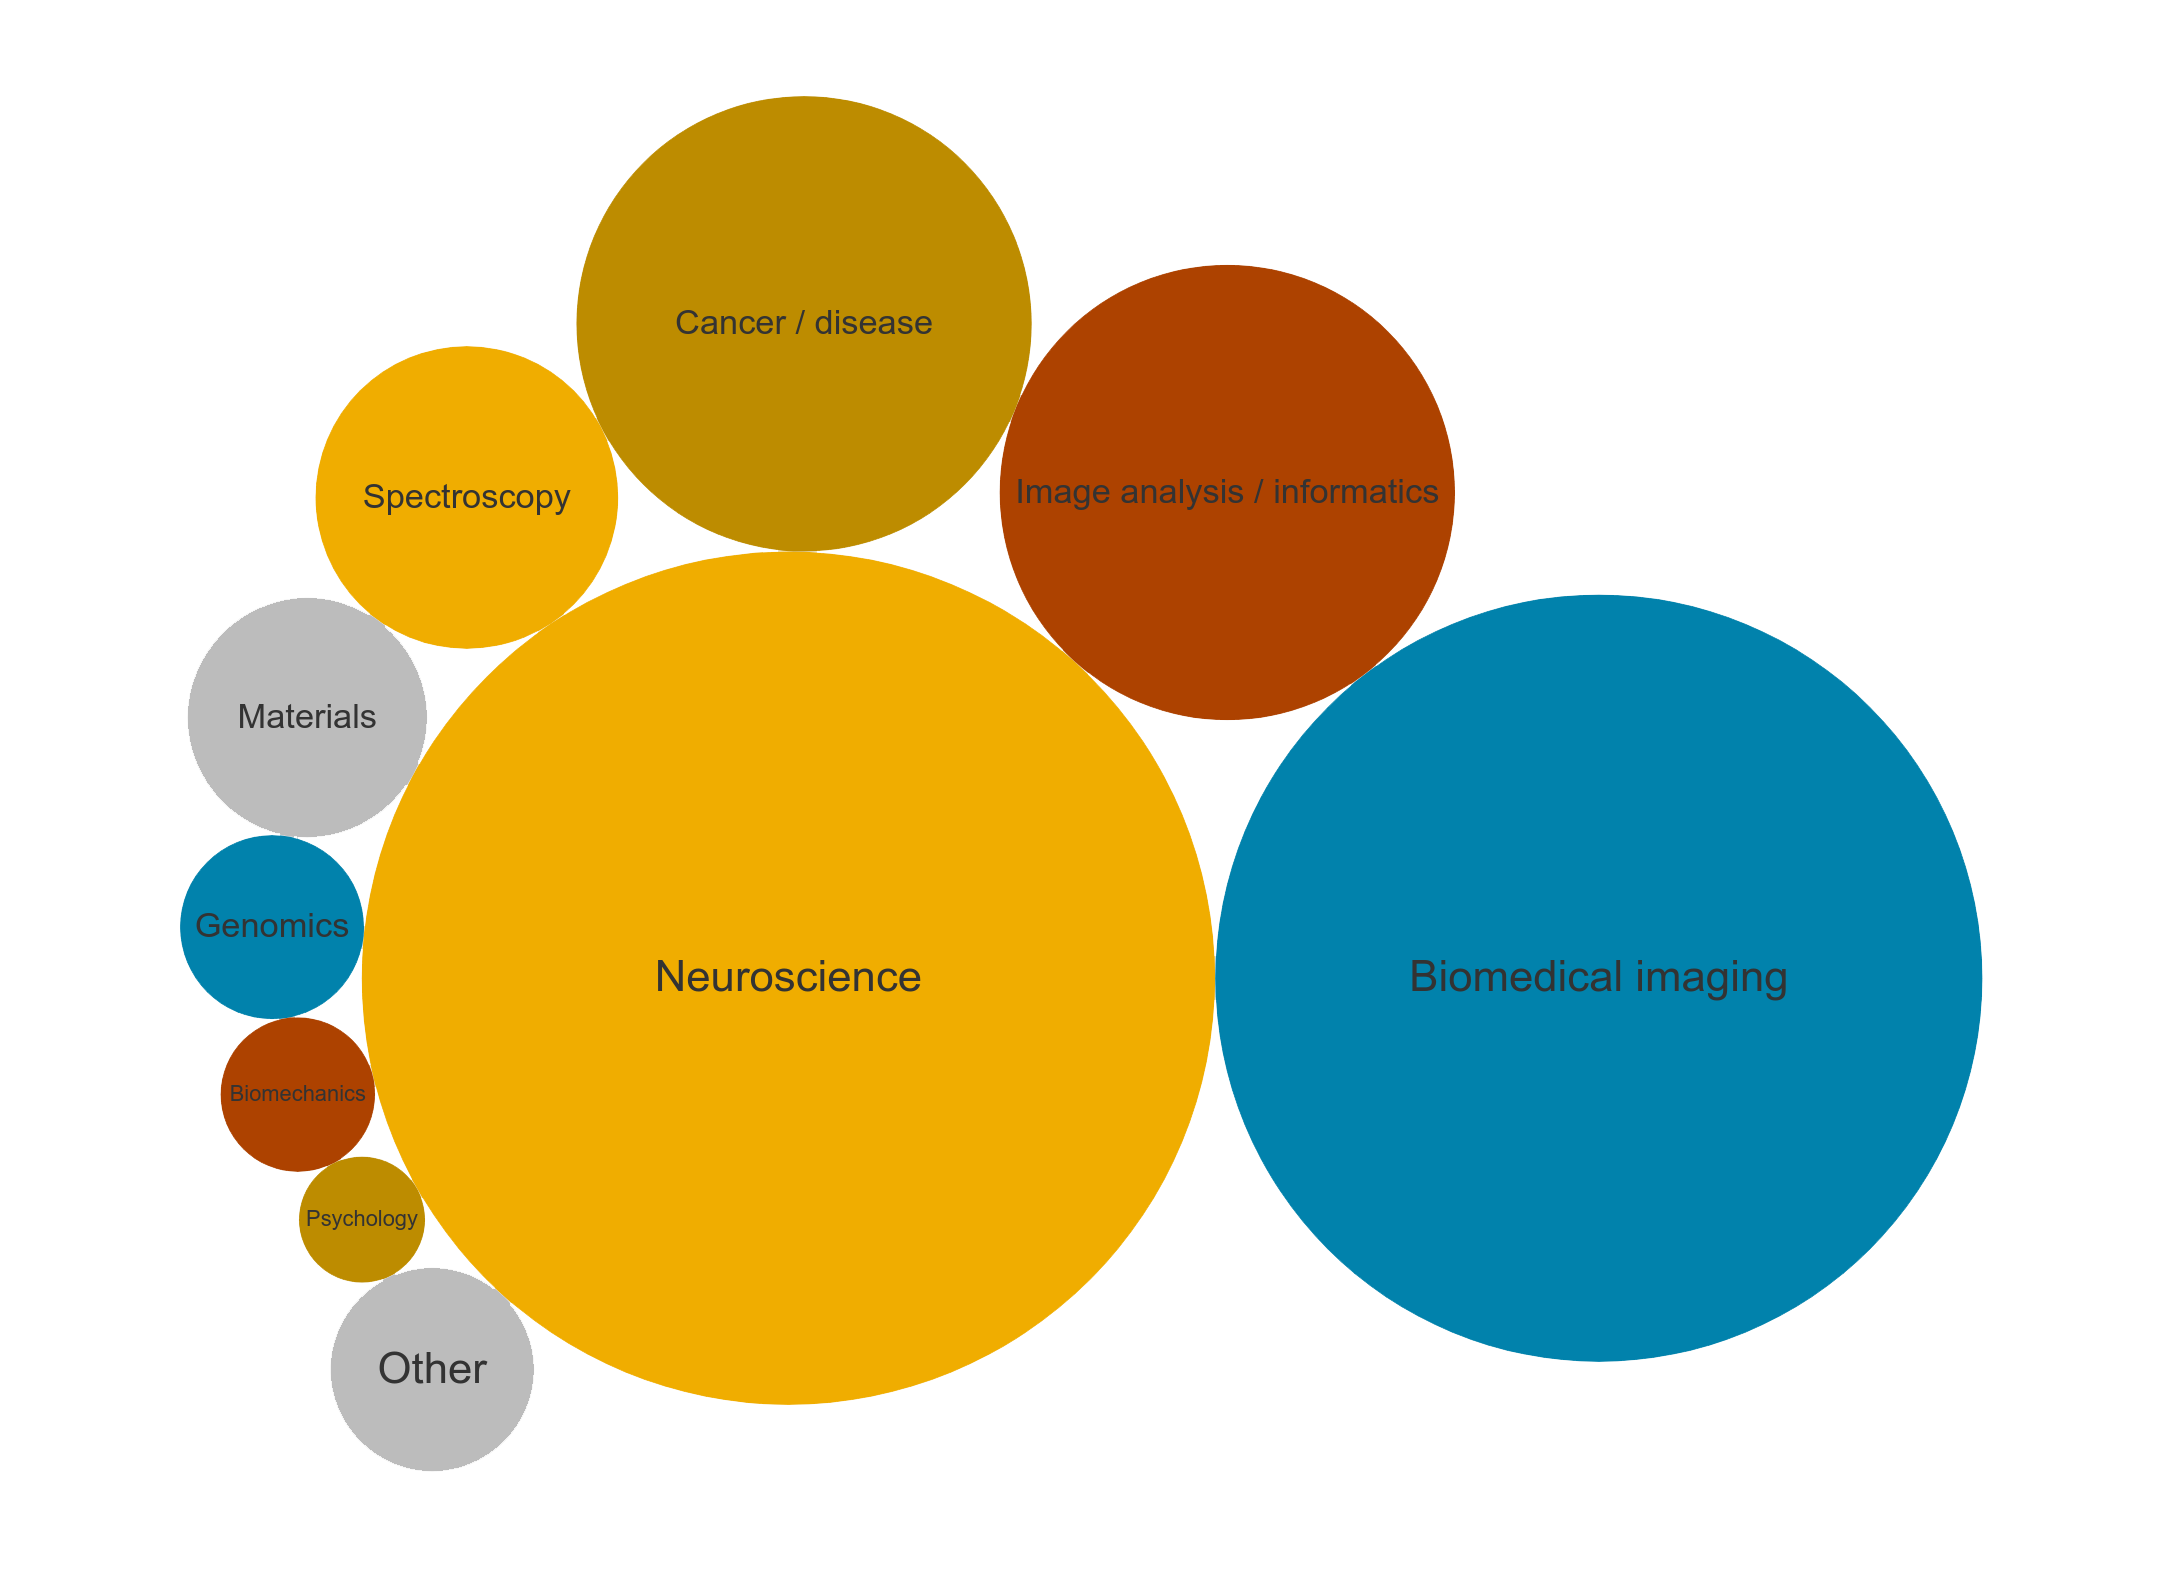 Bubble chart showing the breakdown of respondents research fields